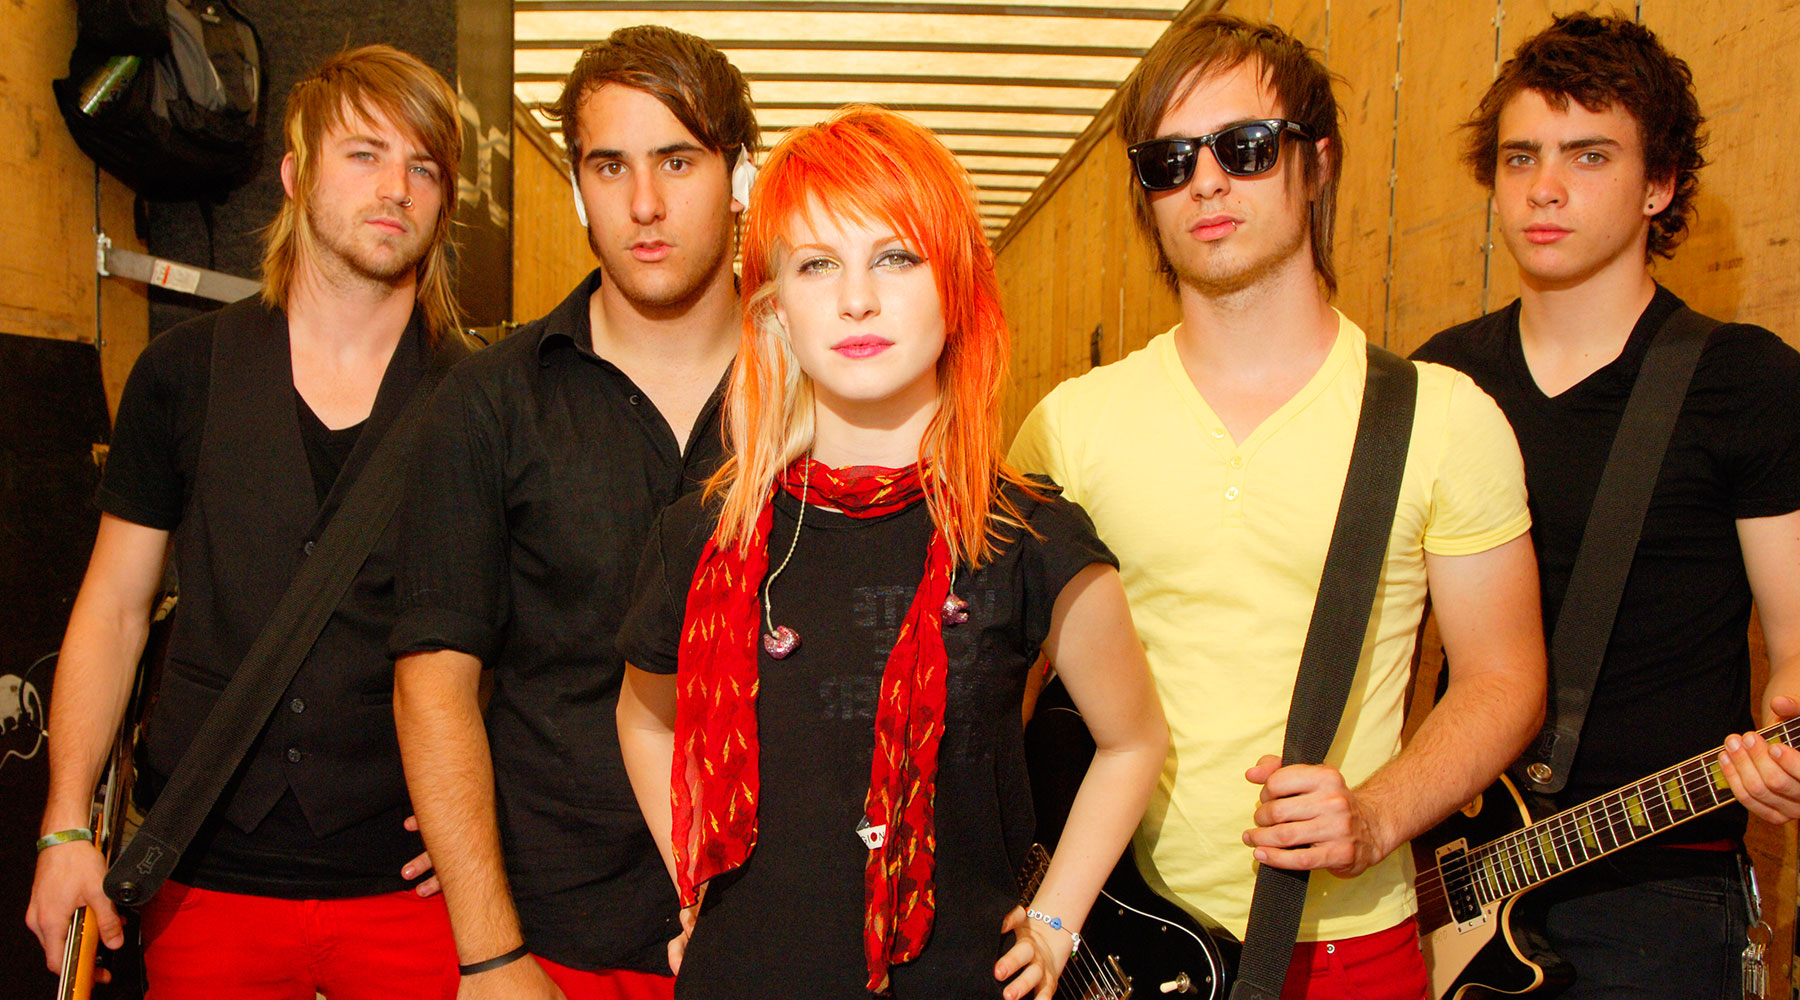 Paramore. Photo © Jared Milgrim